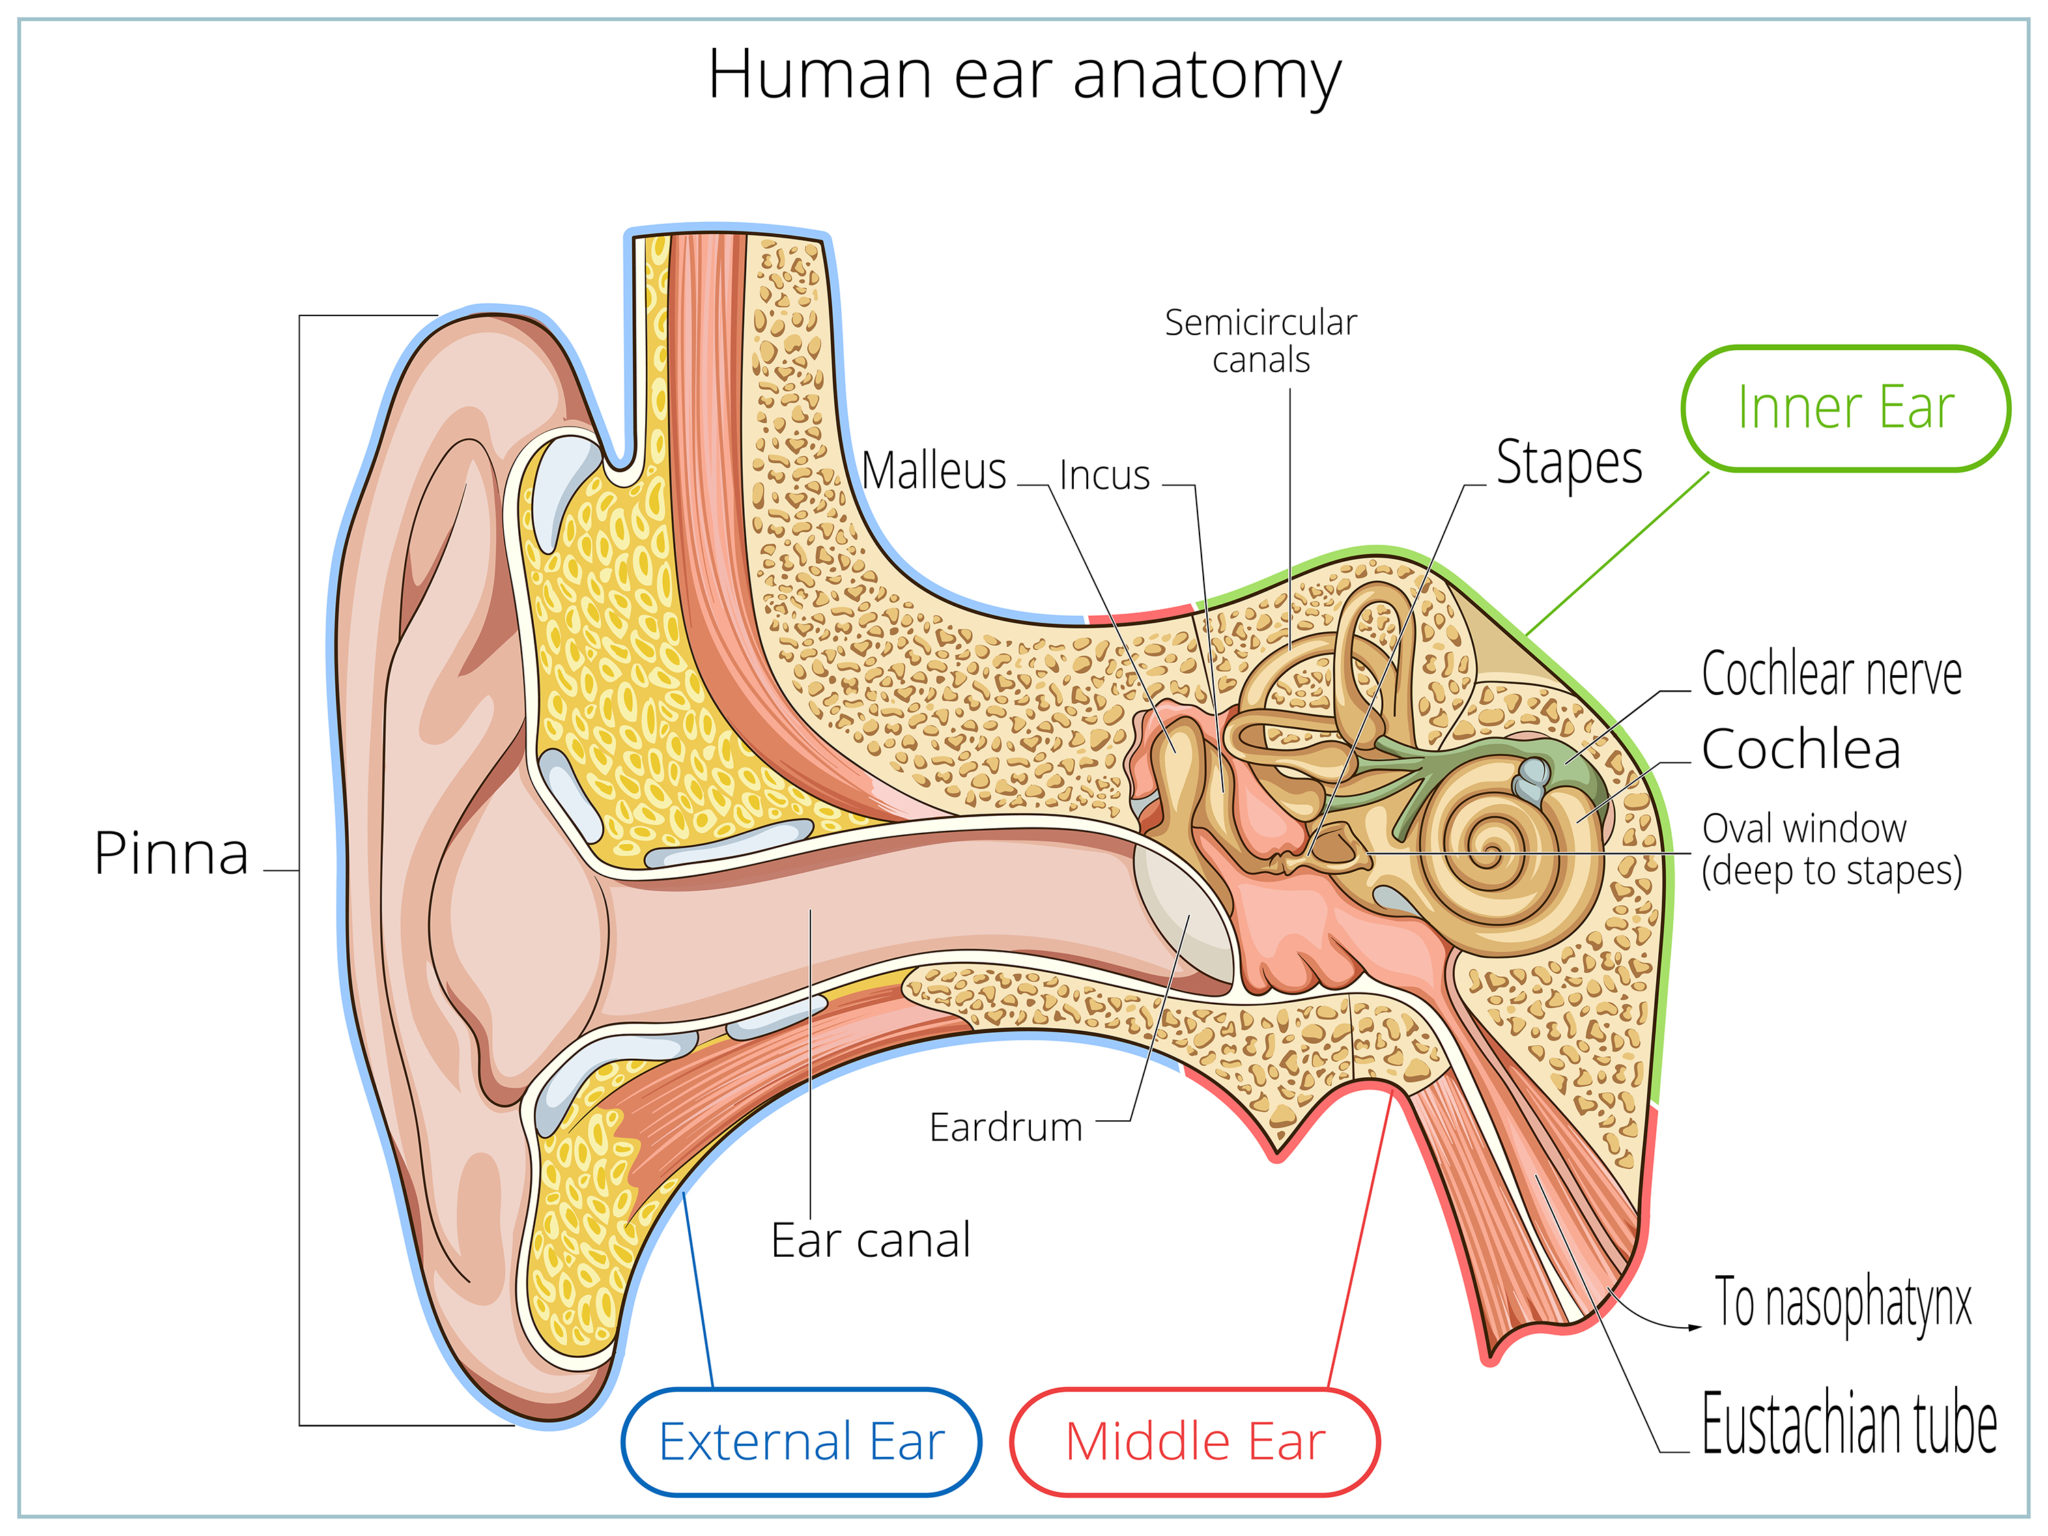 Ear anatomy vatozozdevelopment ear anatomy ccuart Choice Image